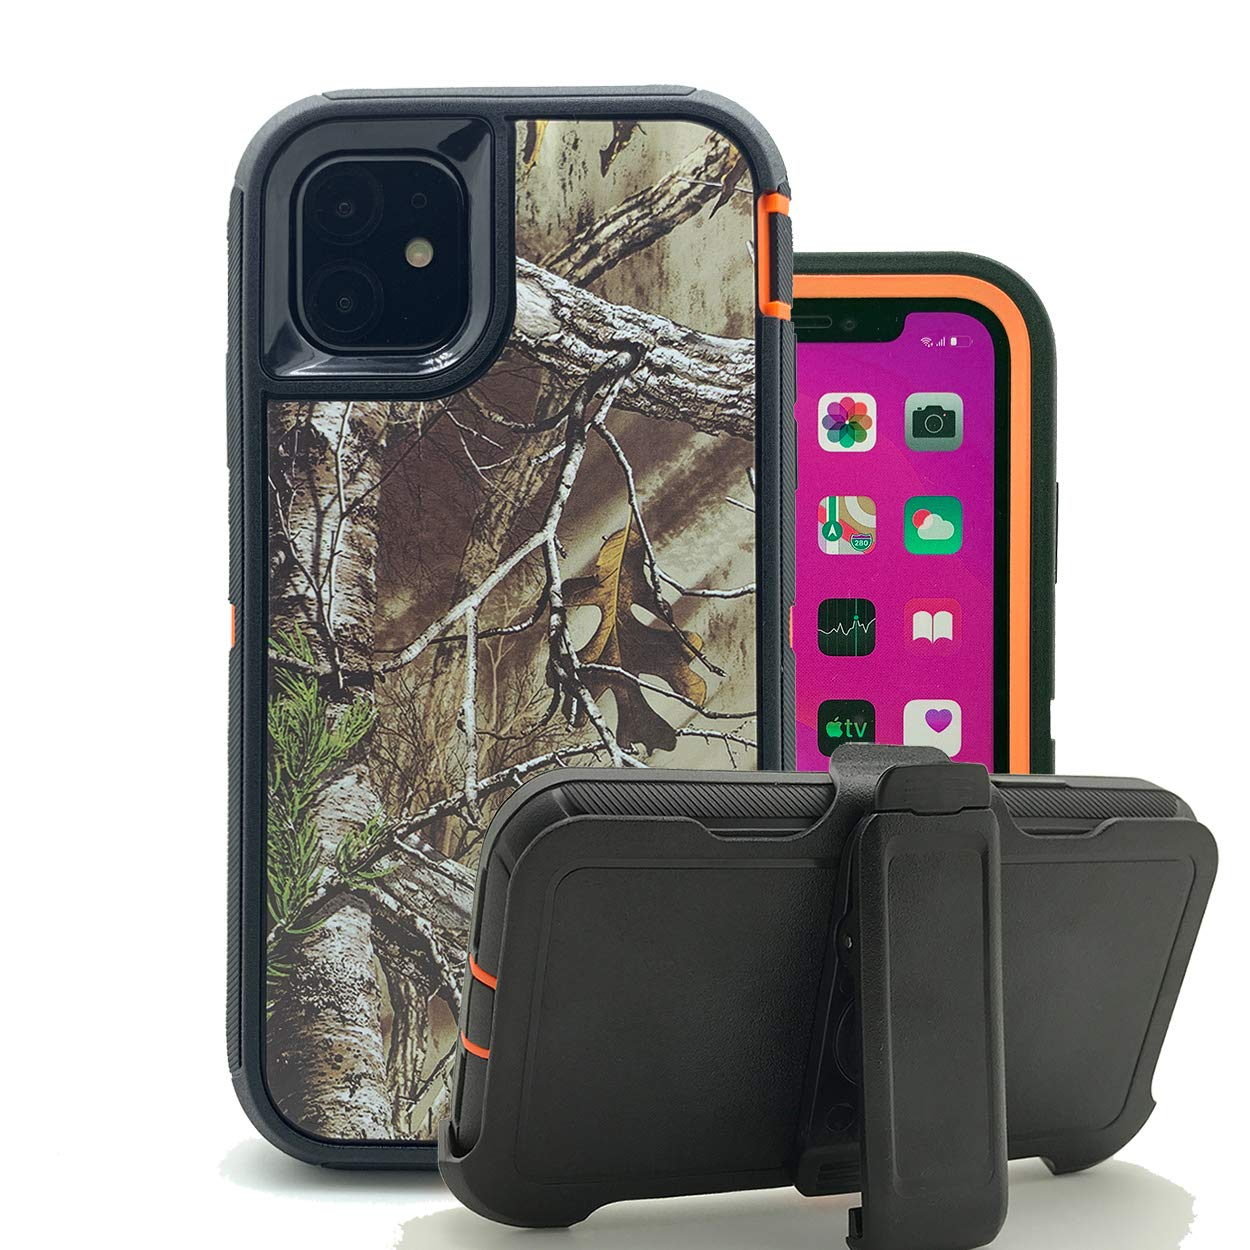 iPhone 11 Cover, Harsel Heavy Duty Scratch Resistant Defender Camouflage Hybrid Armor Military Grade Protection Shockproof Durable Case Shell with Belt Clip for iPhone 11 (Xtra Orange)